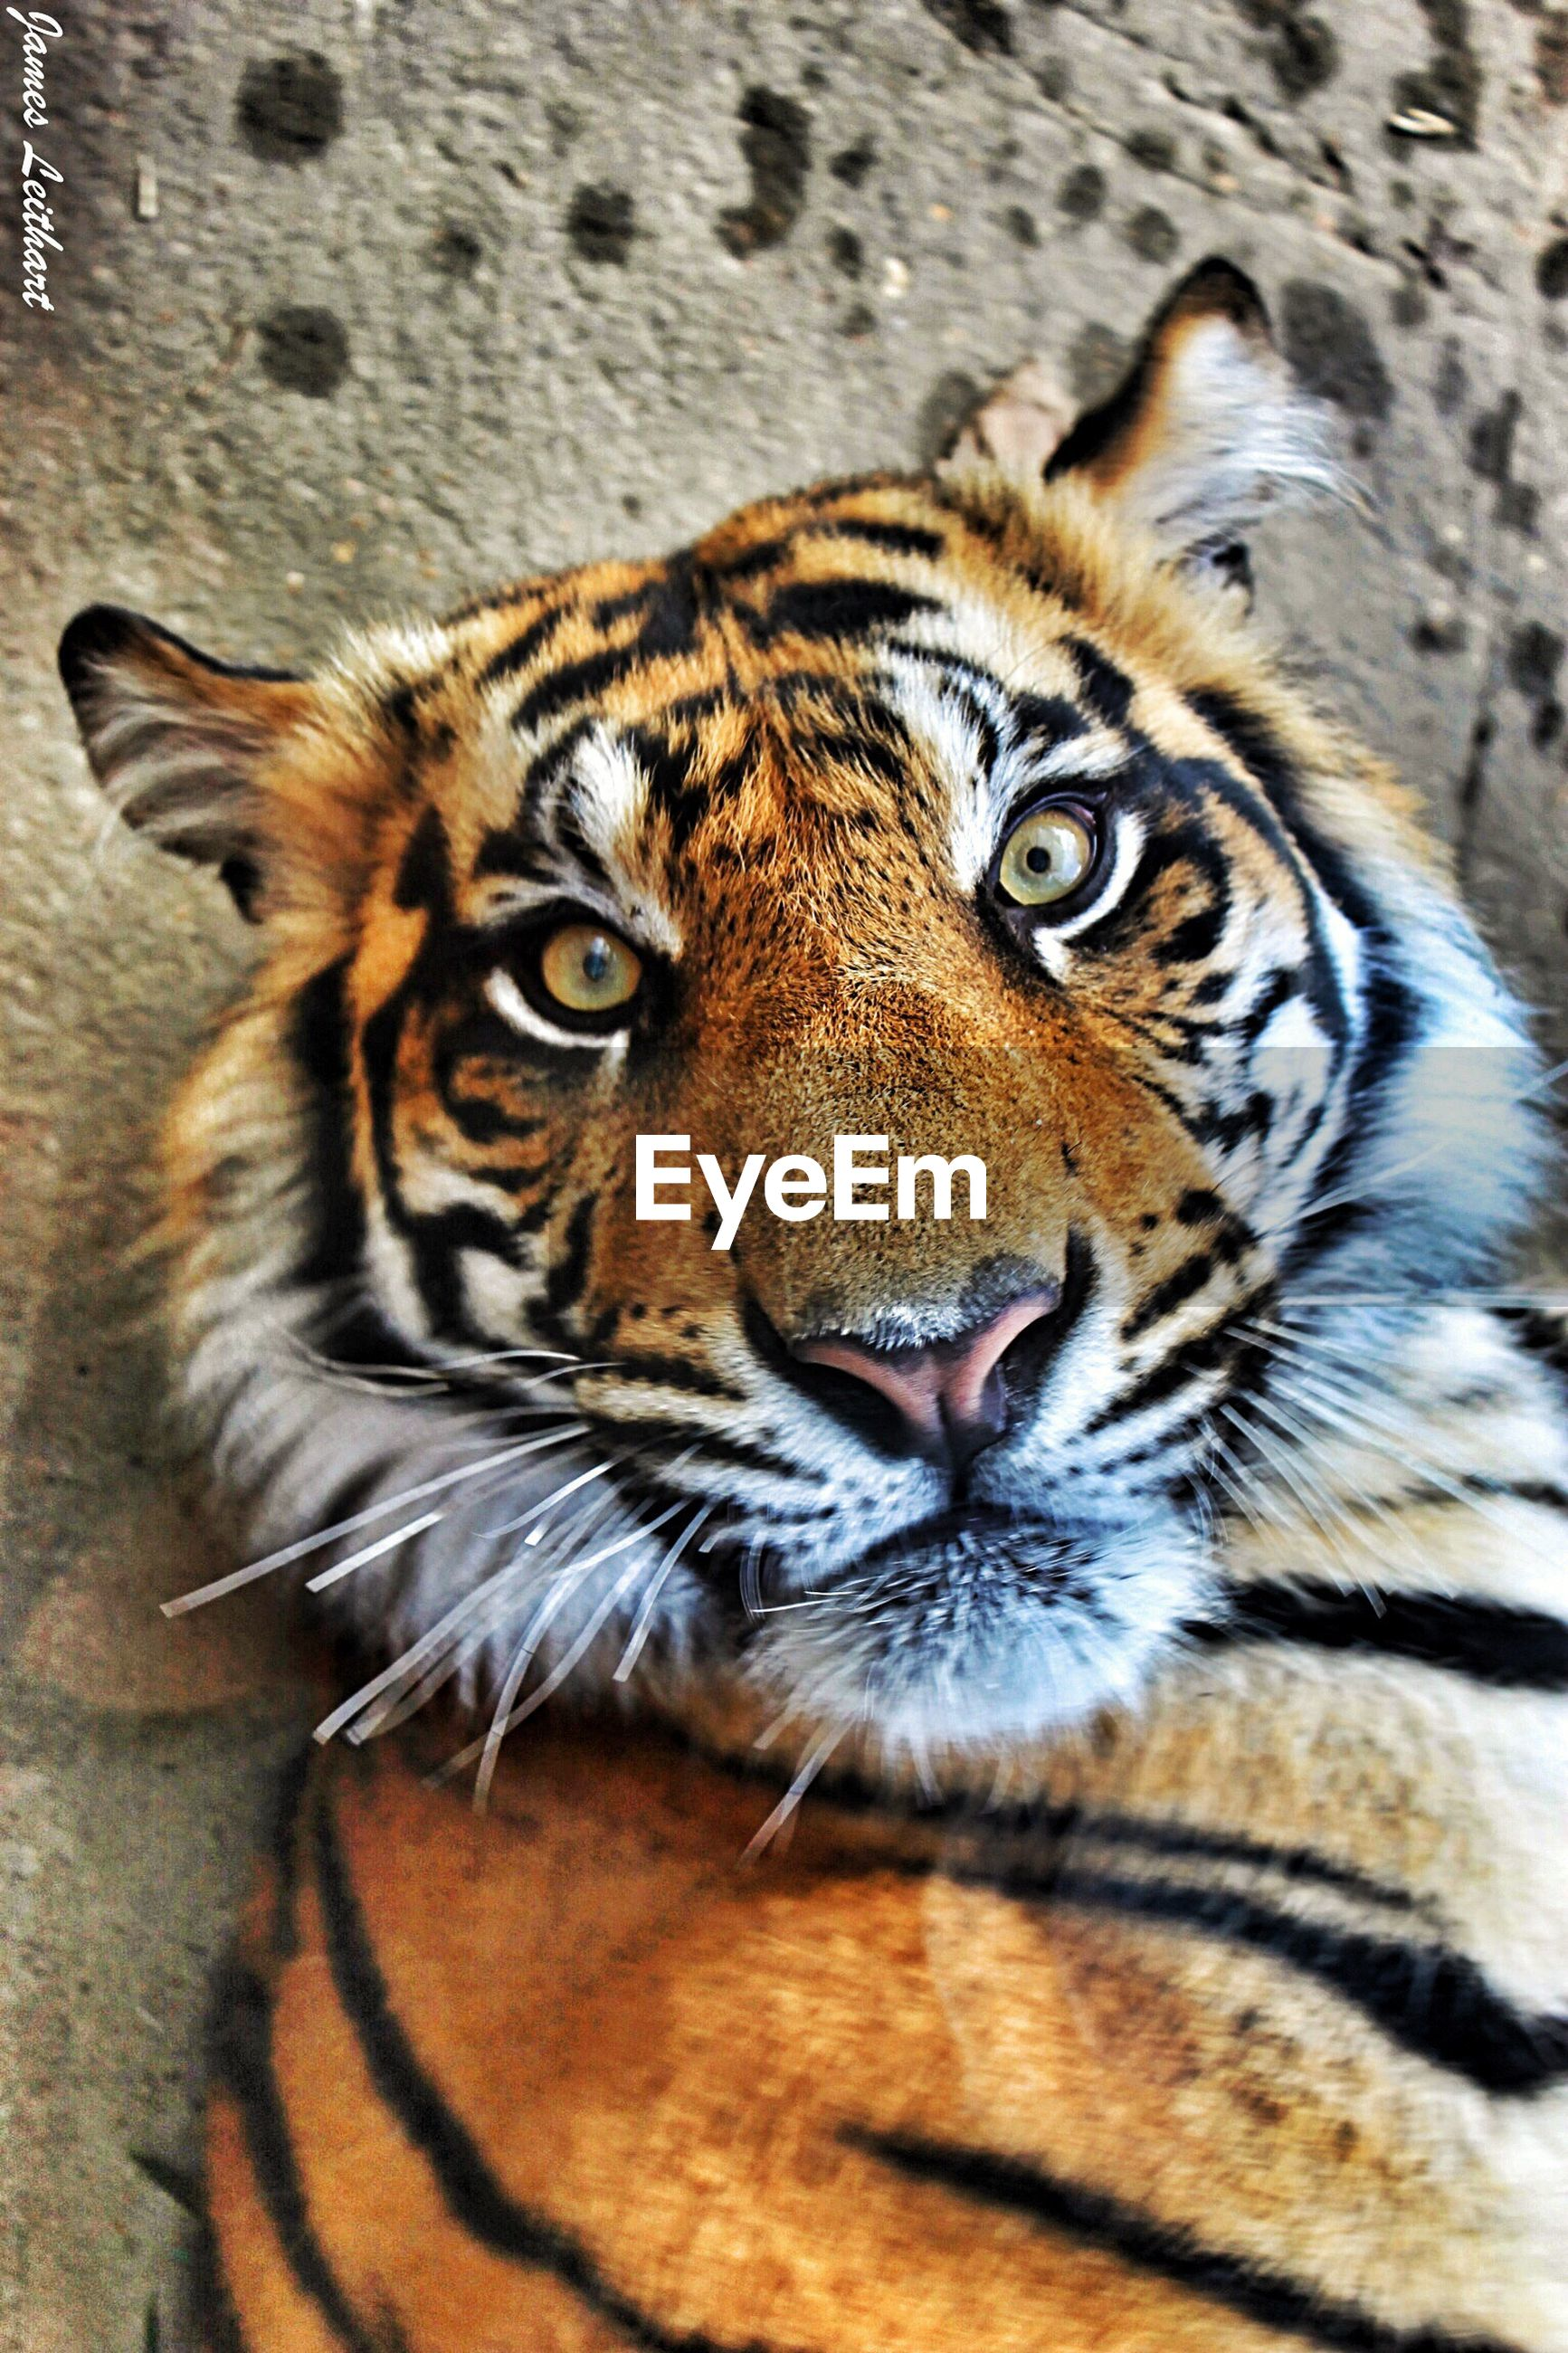 animal themes, one animal, animal markings, animals in the wild, mammal, wildlife, tiger, natural pattern, whisker, close-up, safari animals, big cat, portrait, focus on foreground, animal head, looking at camera, endangered species, undomesticated cat, leopard, outdoors